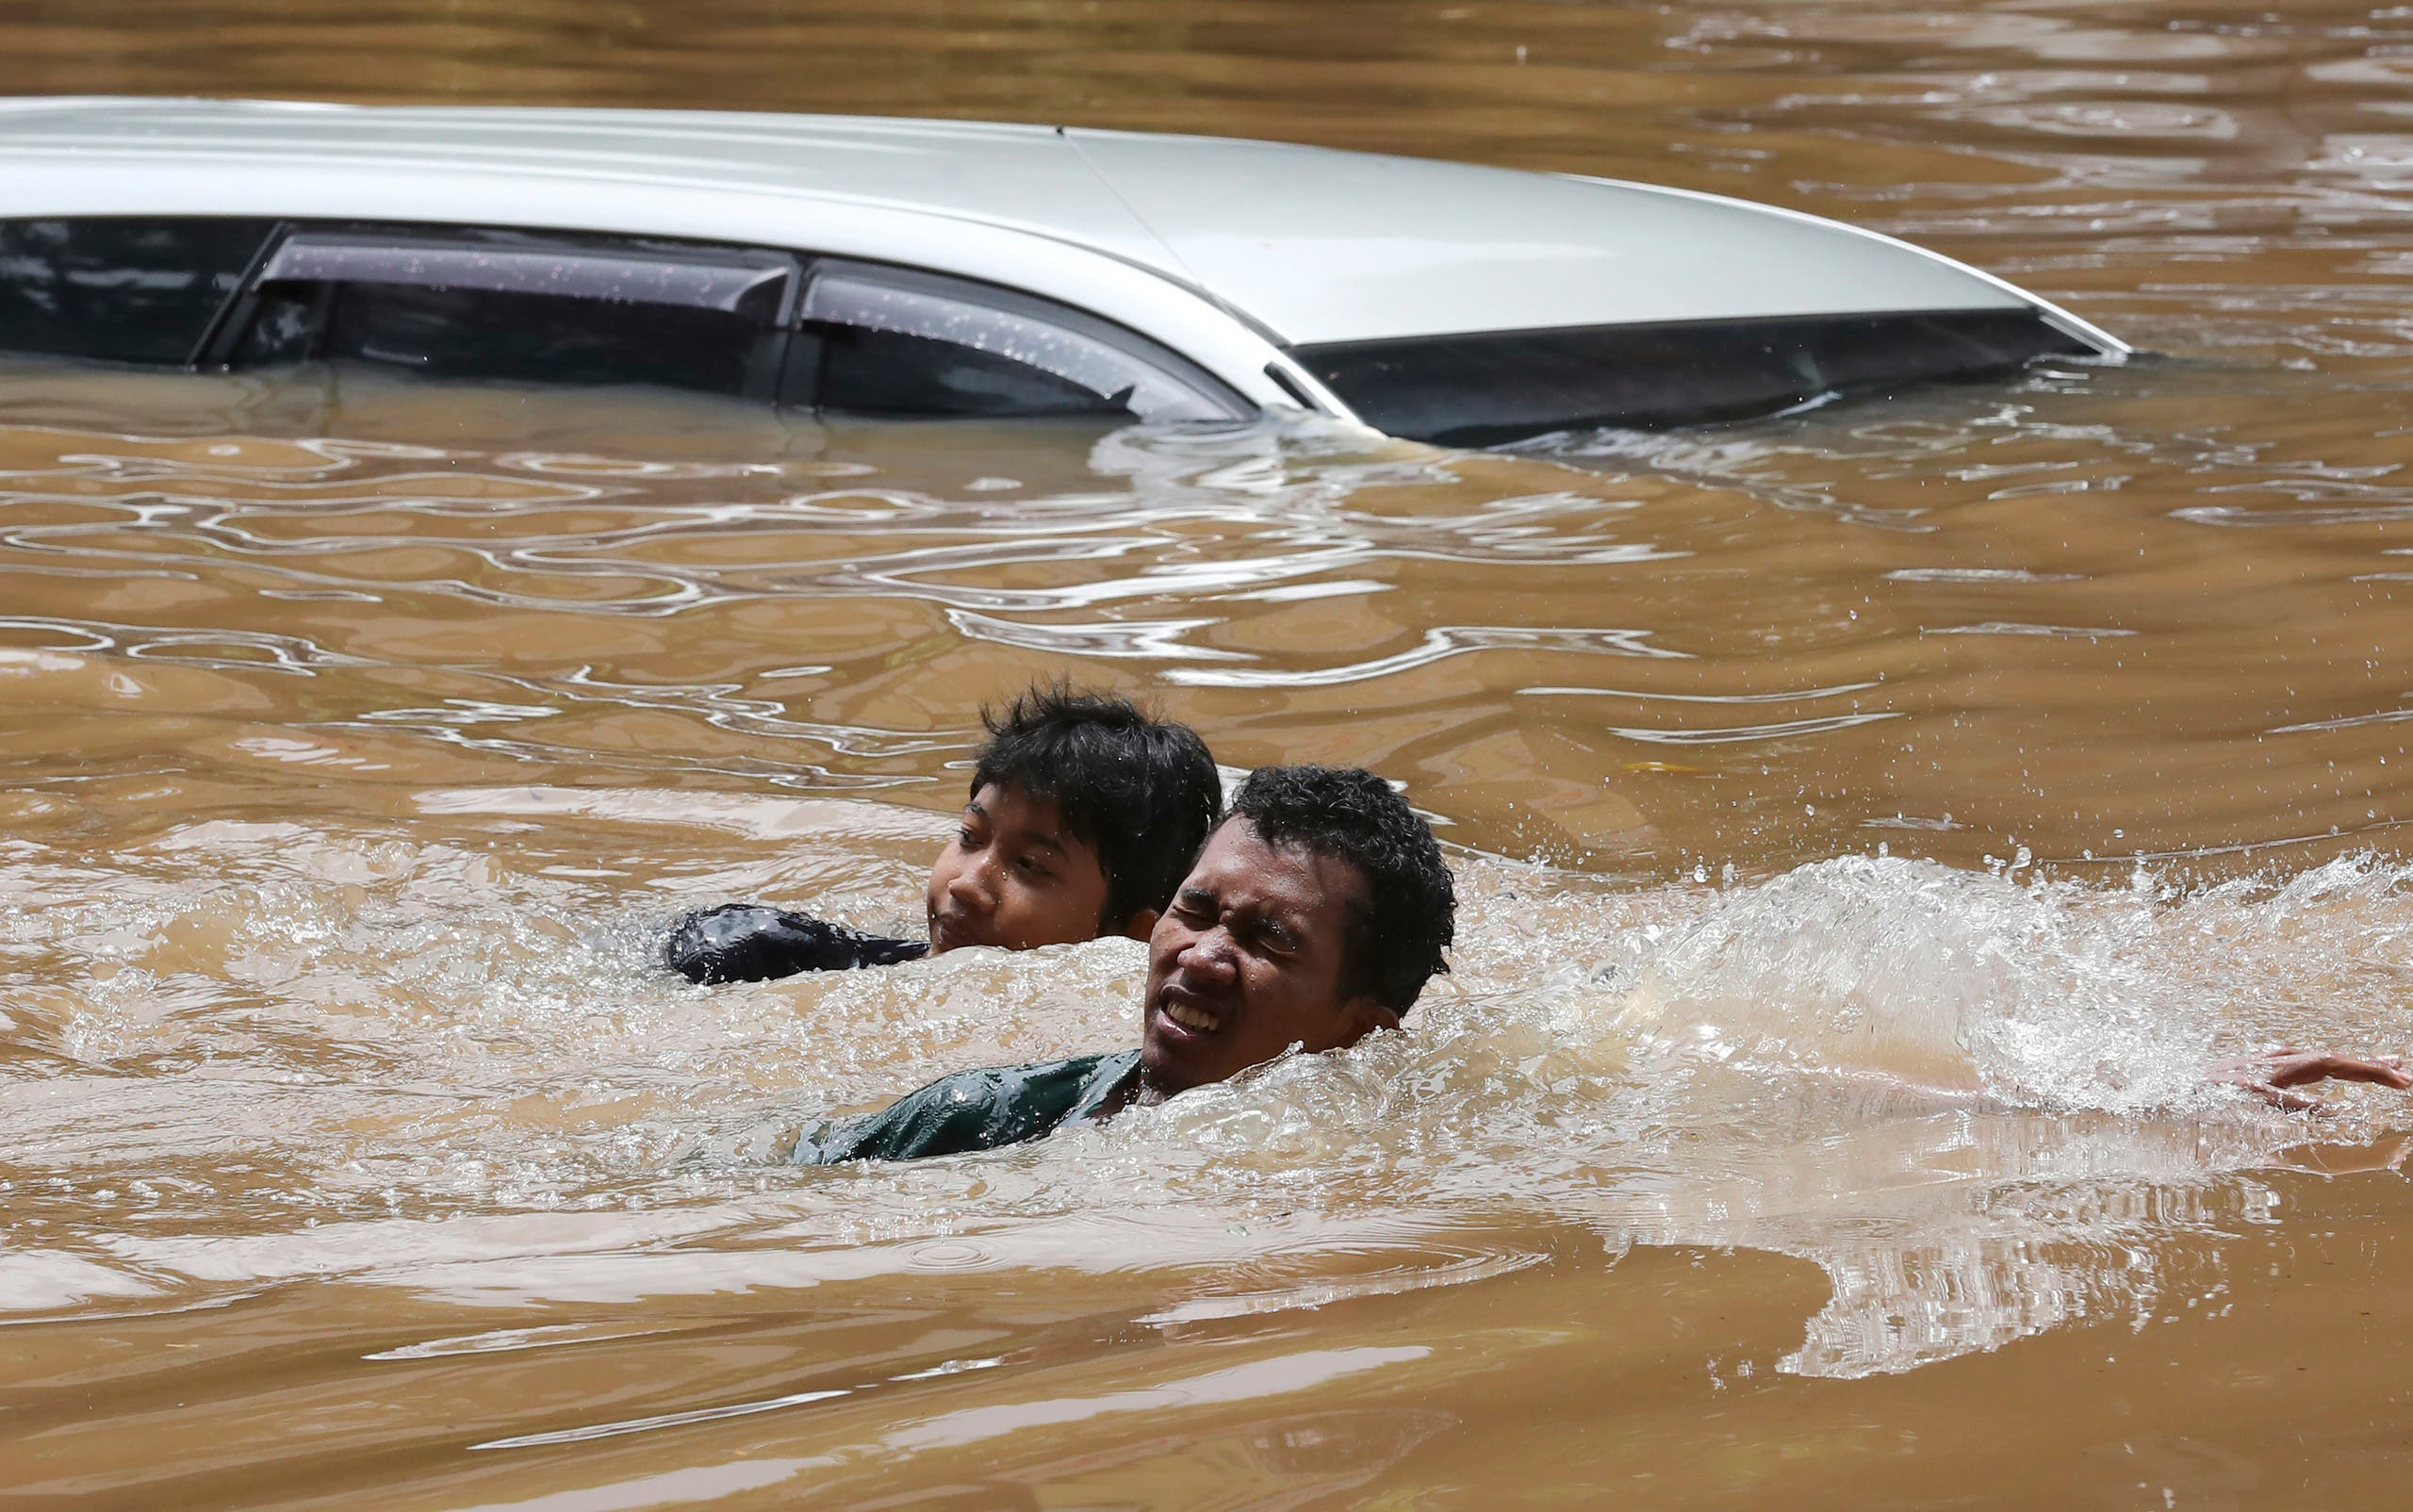 People swim through a flooded neighborhood following heavy rains in Jakarta, Indonesia, Saturday, February 20, 2021. (AP)